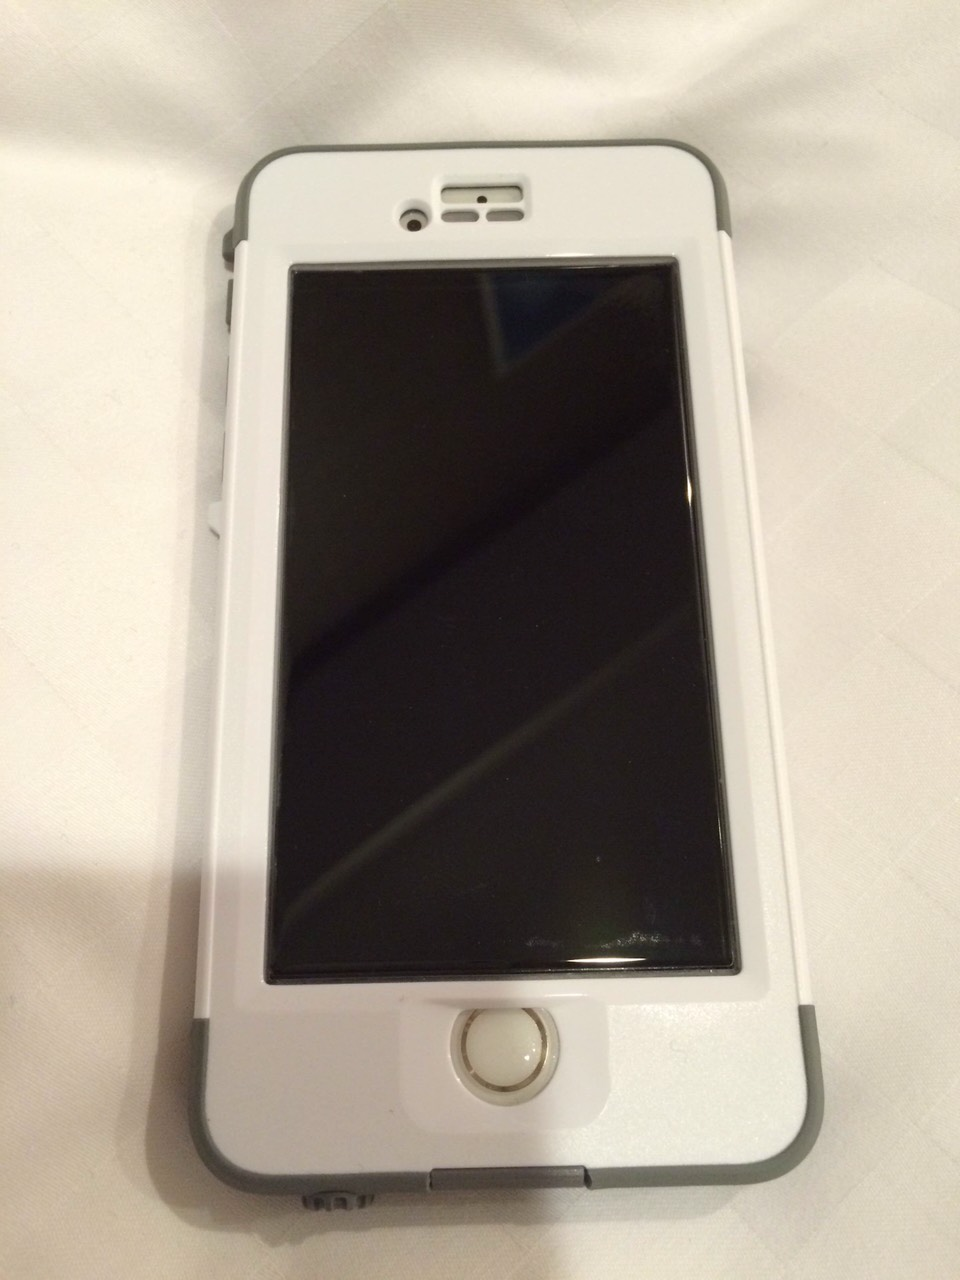 mobile-iphone6s-lifeproofnuud-byiphone6-frontview